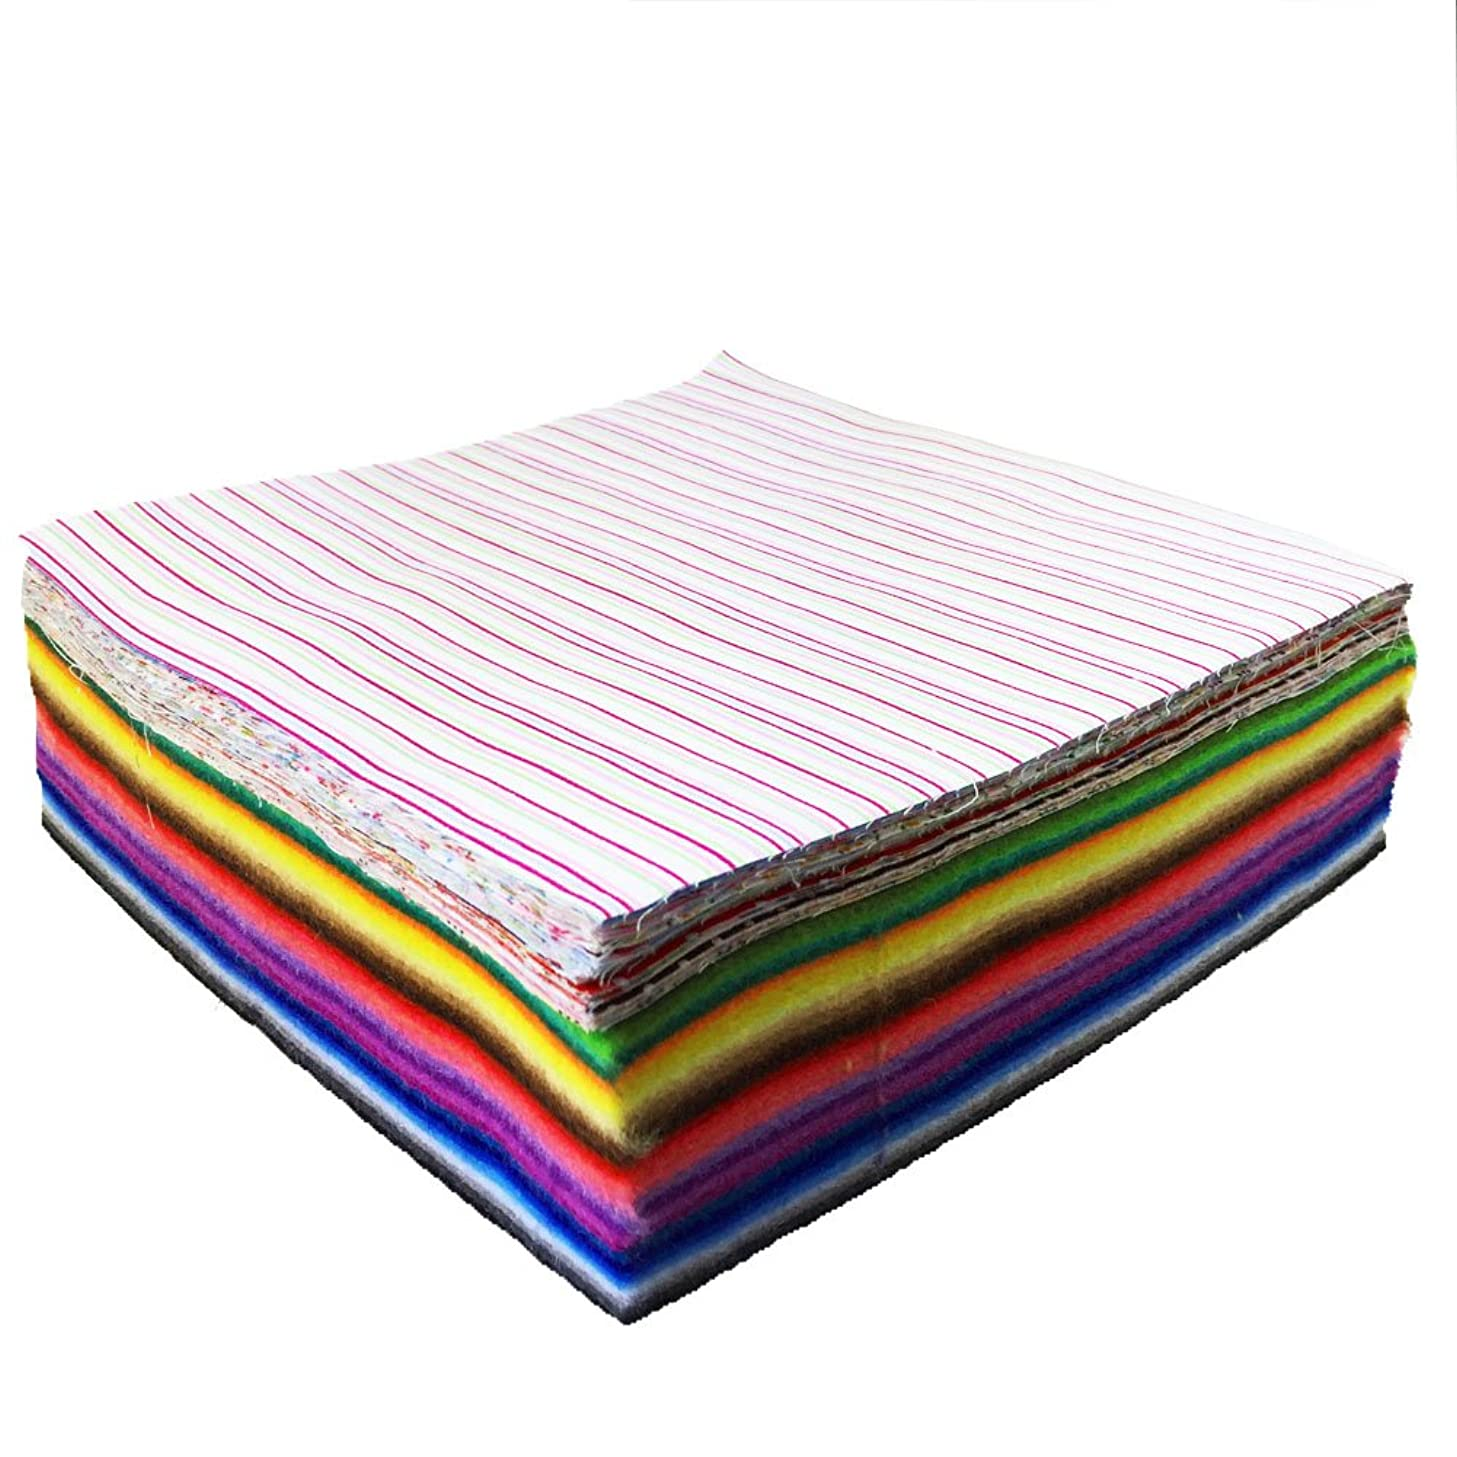 flic-flac Soft Felt Fabric and Cotton Fabric Sheet Assorted Color Felt Pack DIY Craft Squares Nonwoven (20cm20cm, 28pcs Soft Felt+50pcs Cotton Fabric)